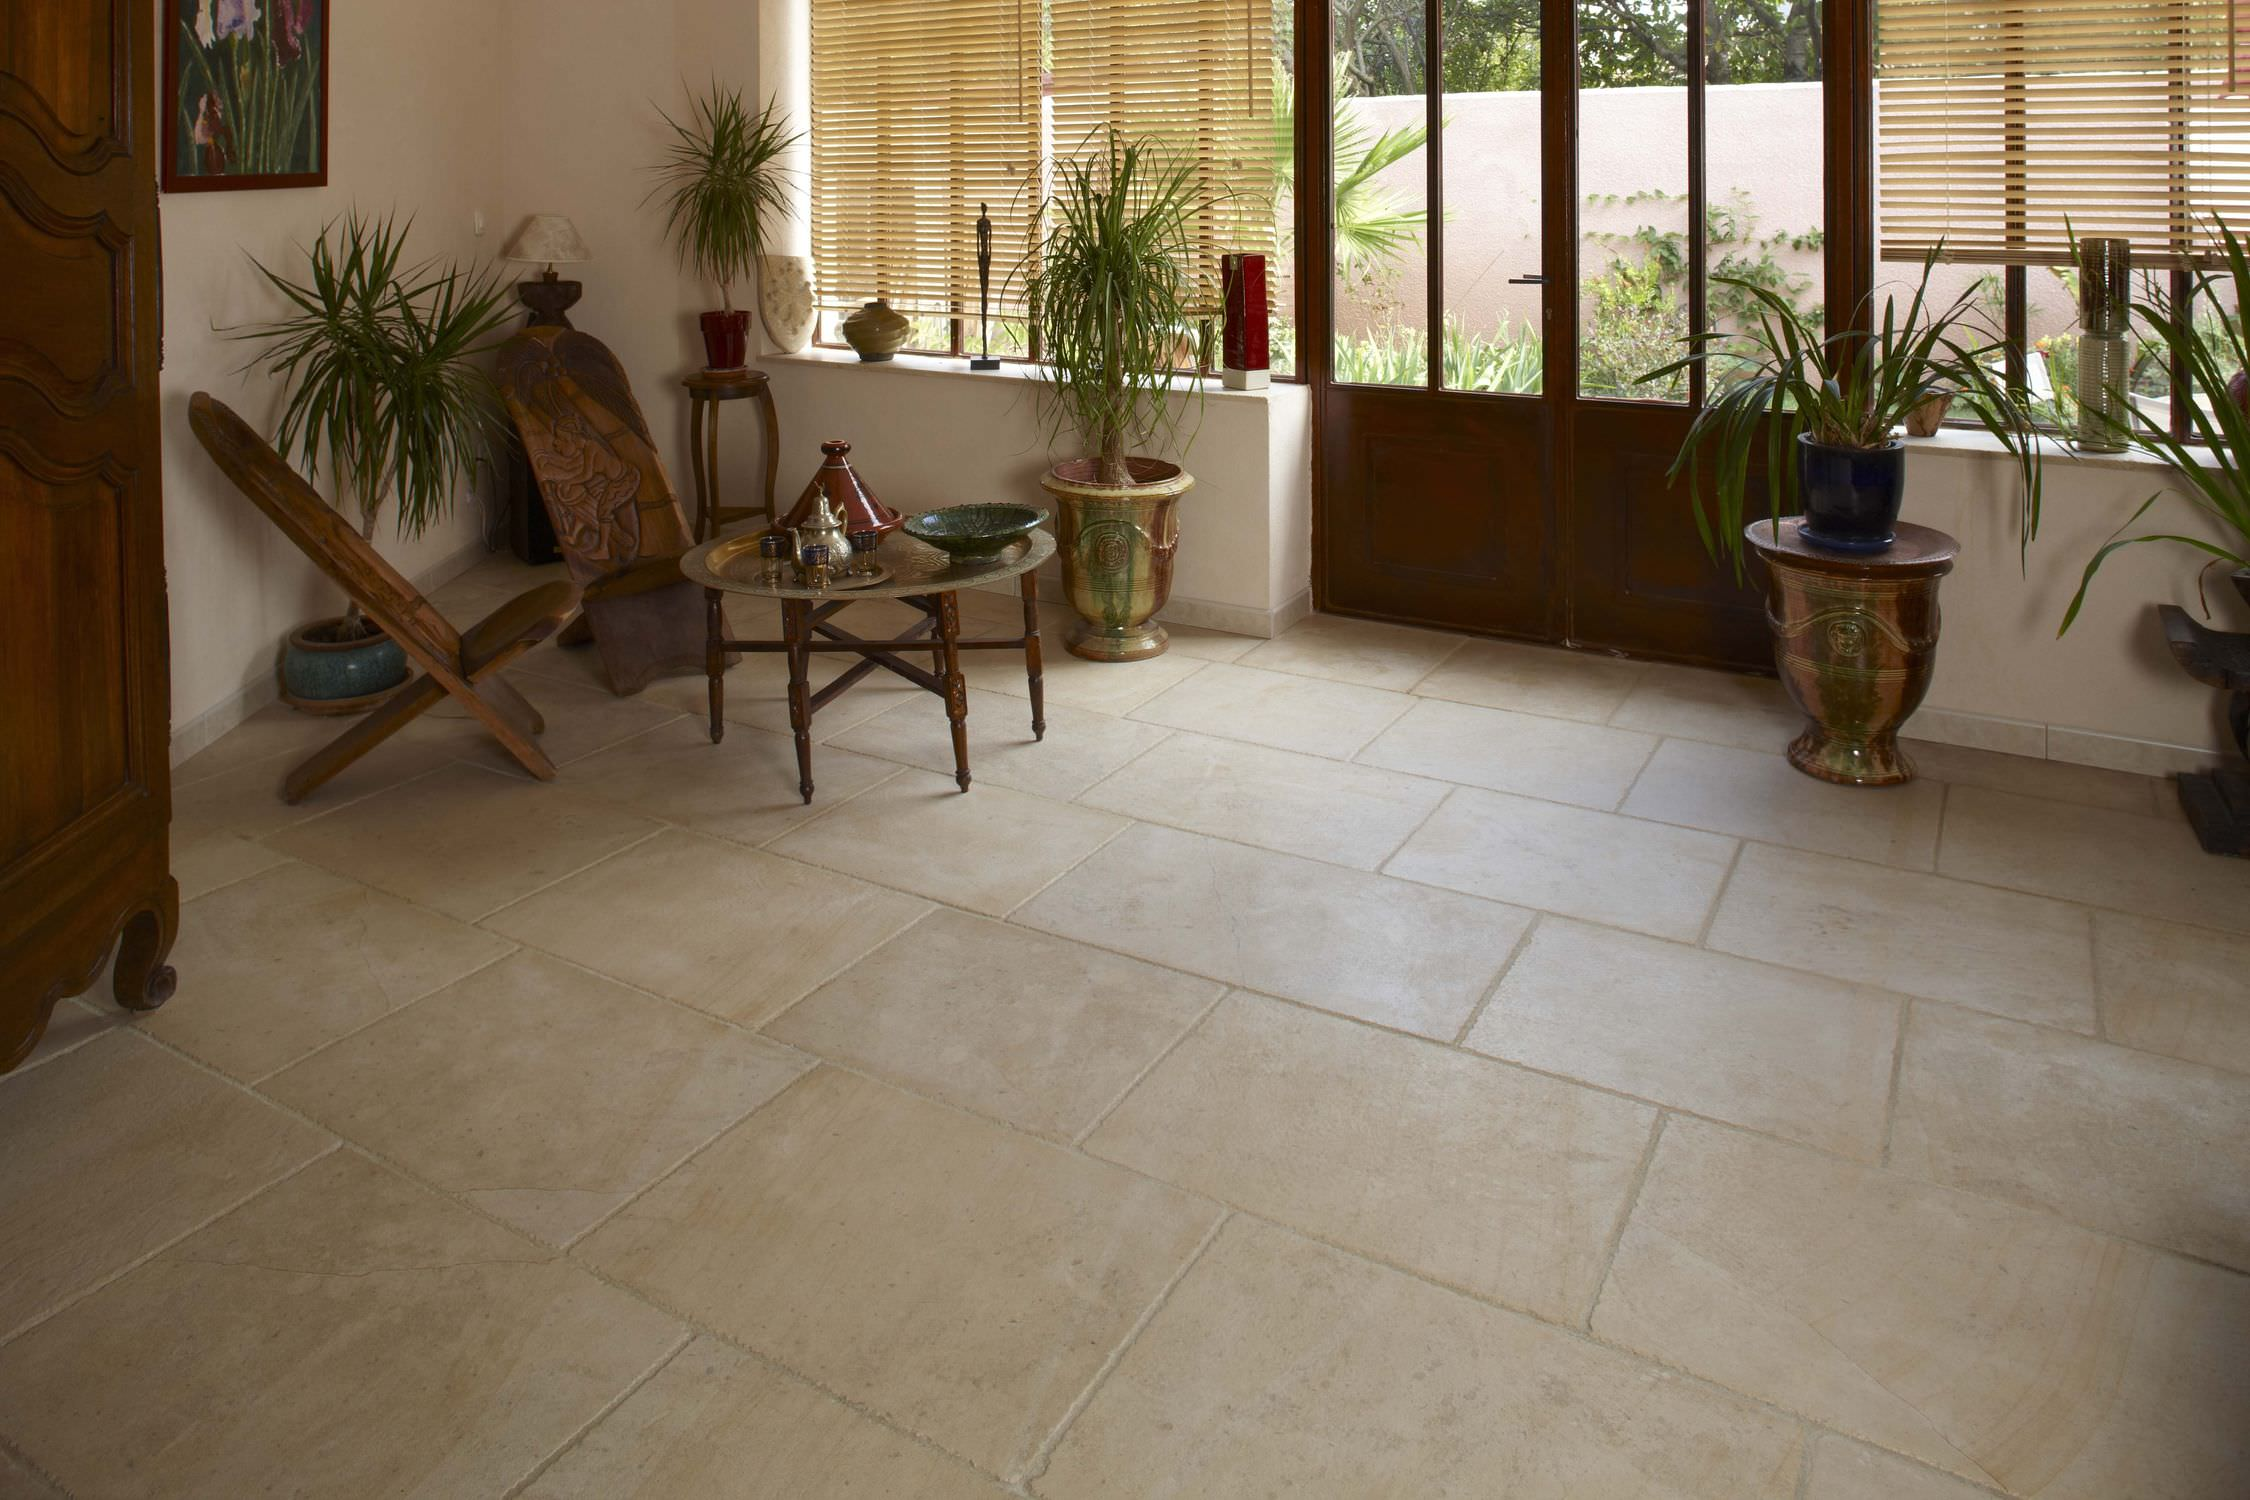 Carrelage pierre naturelle beige murs sol accueil design for Carrelage pierre naturelle